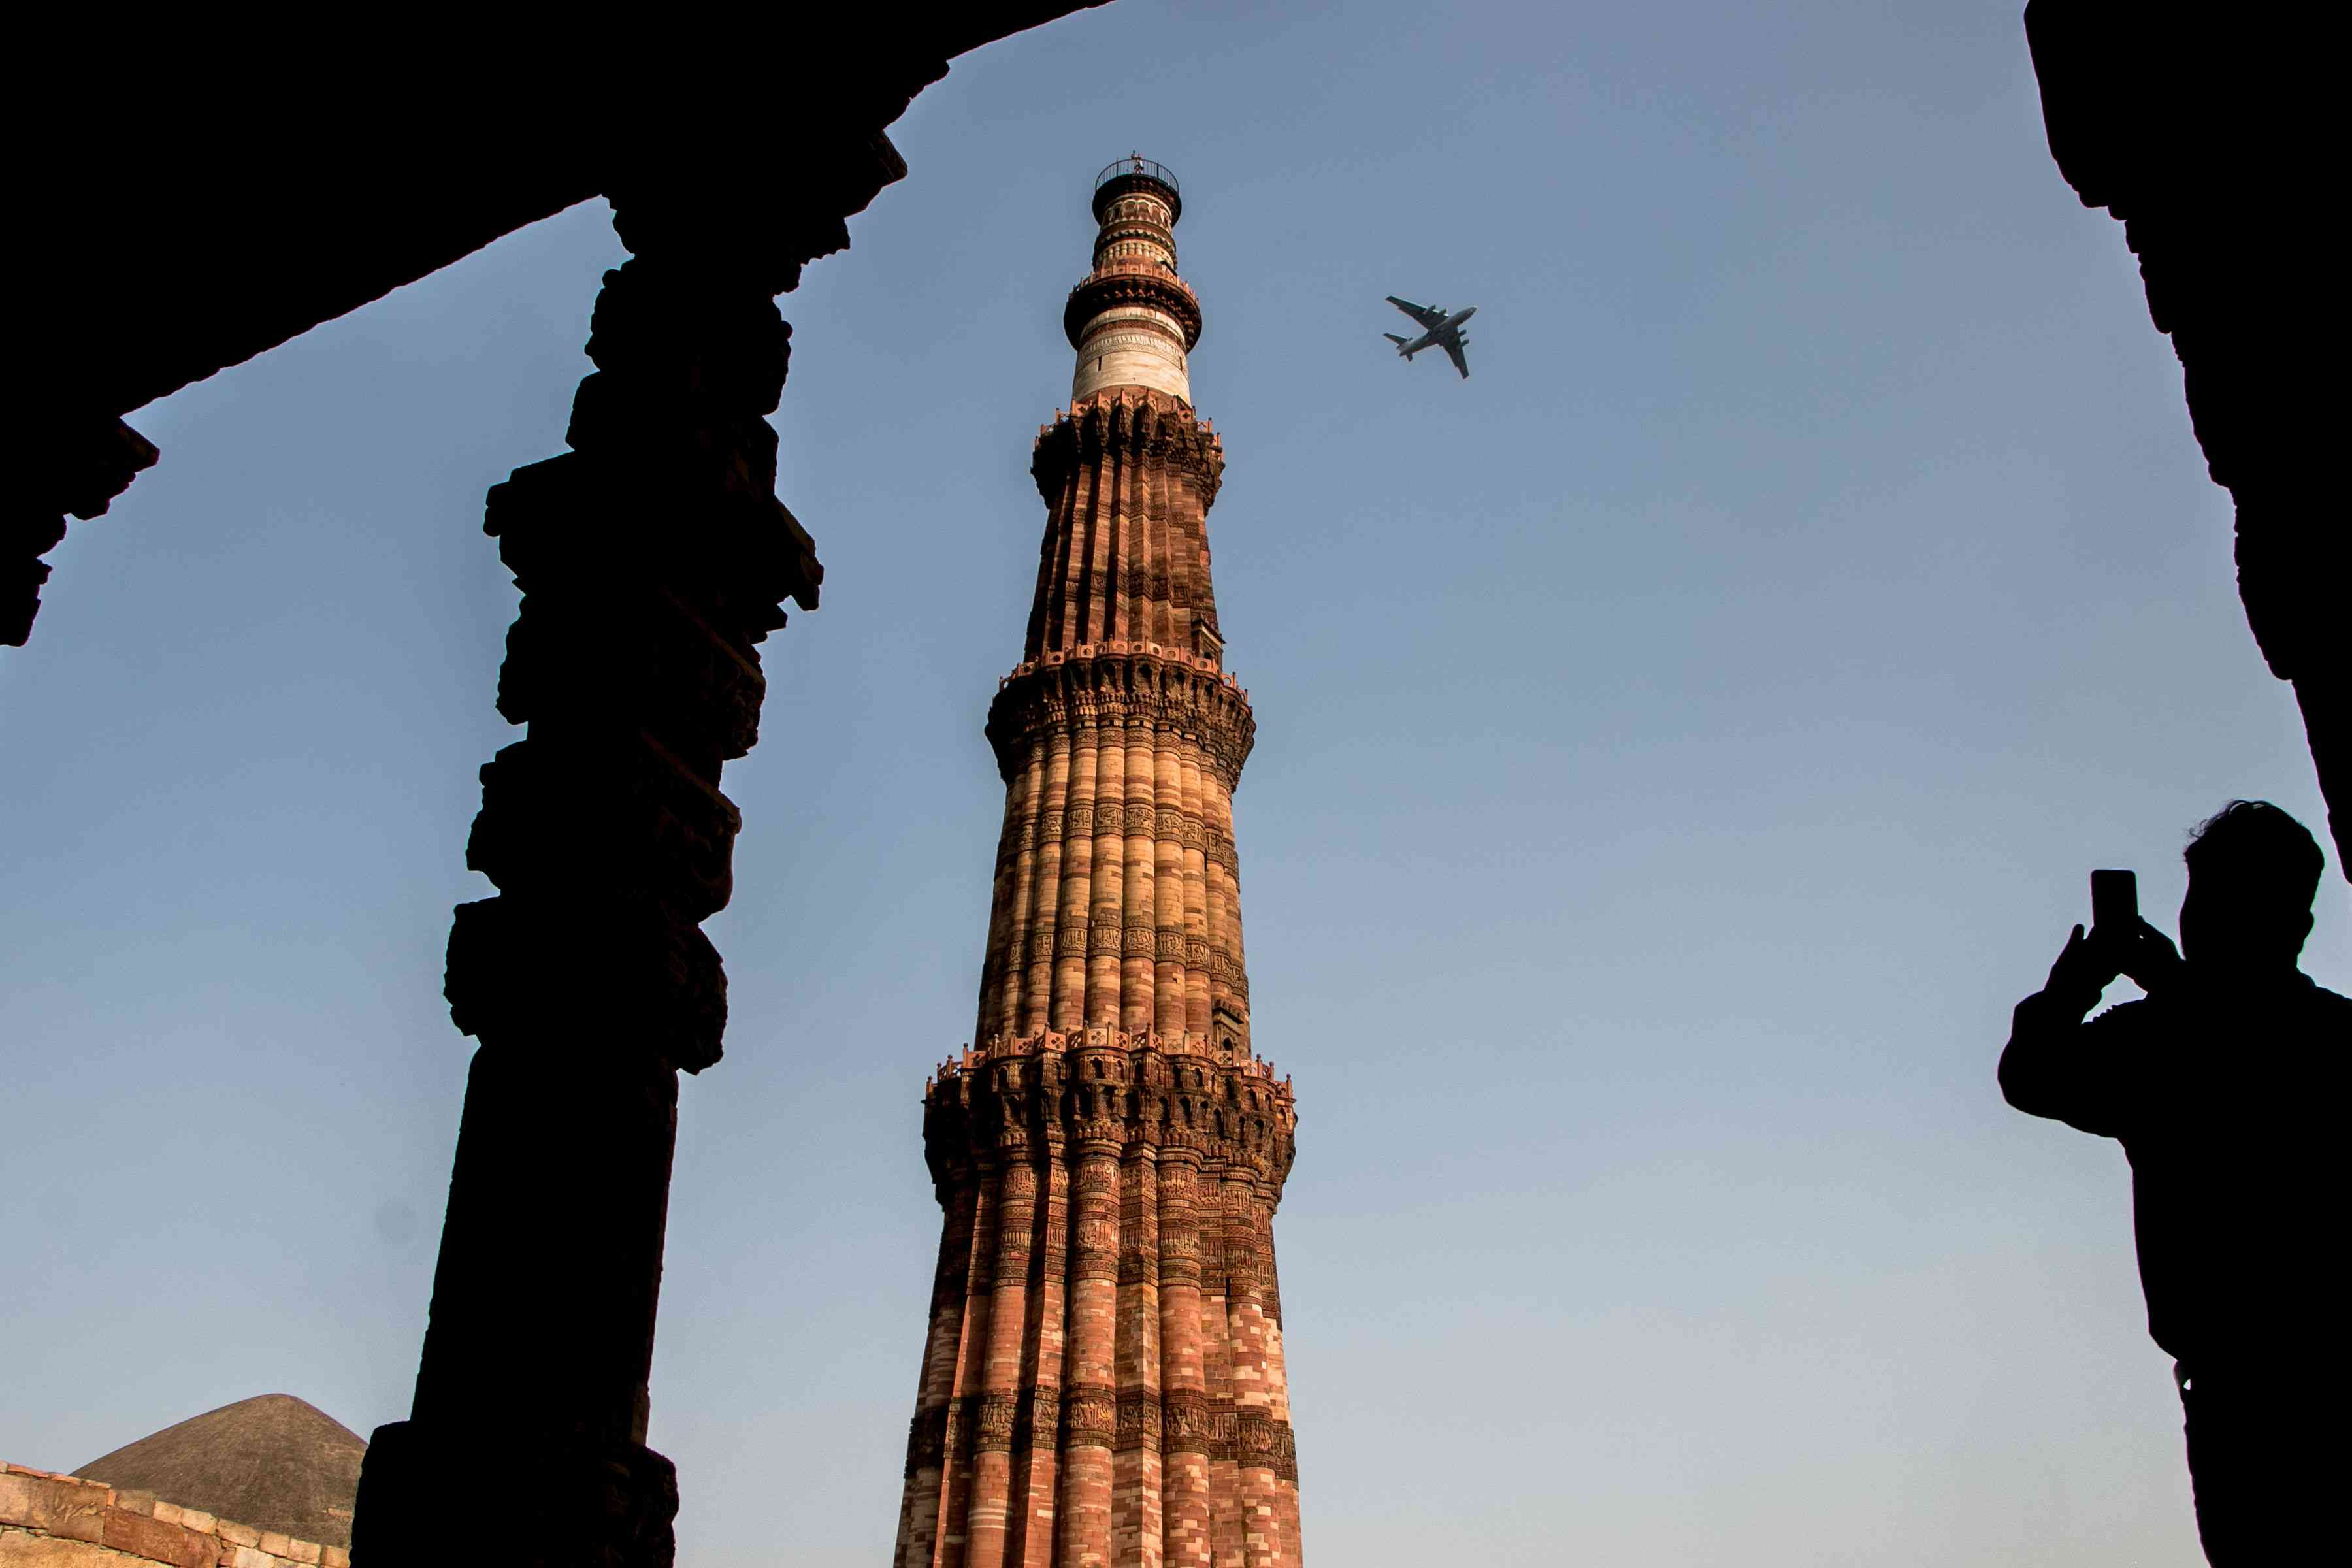 A man taking a photo of Qutab Minar with a plane flying by it